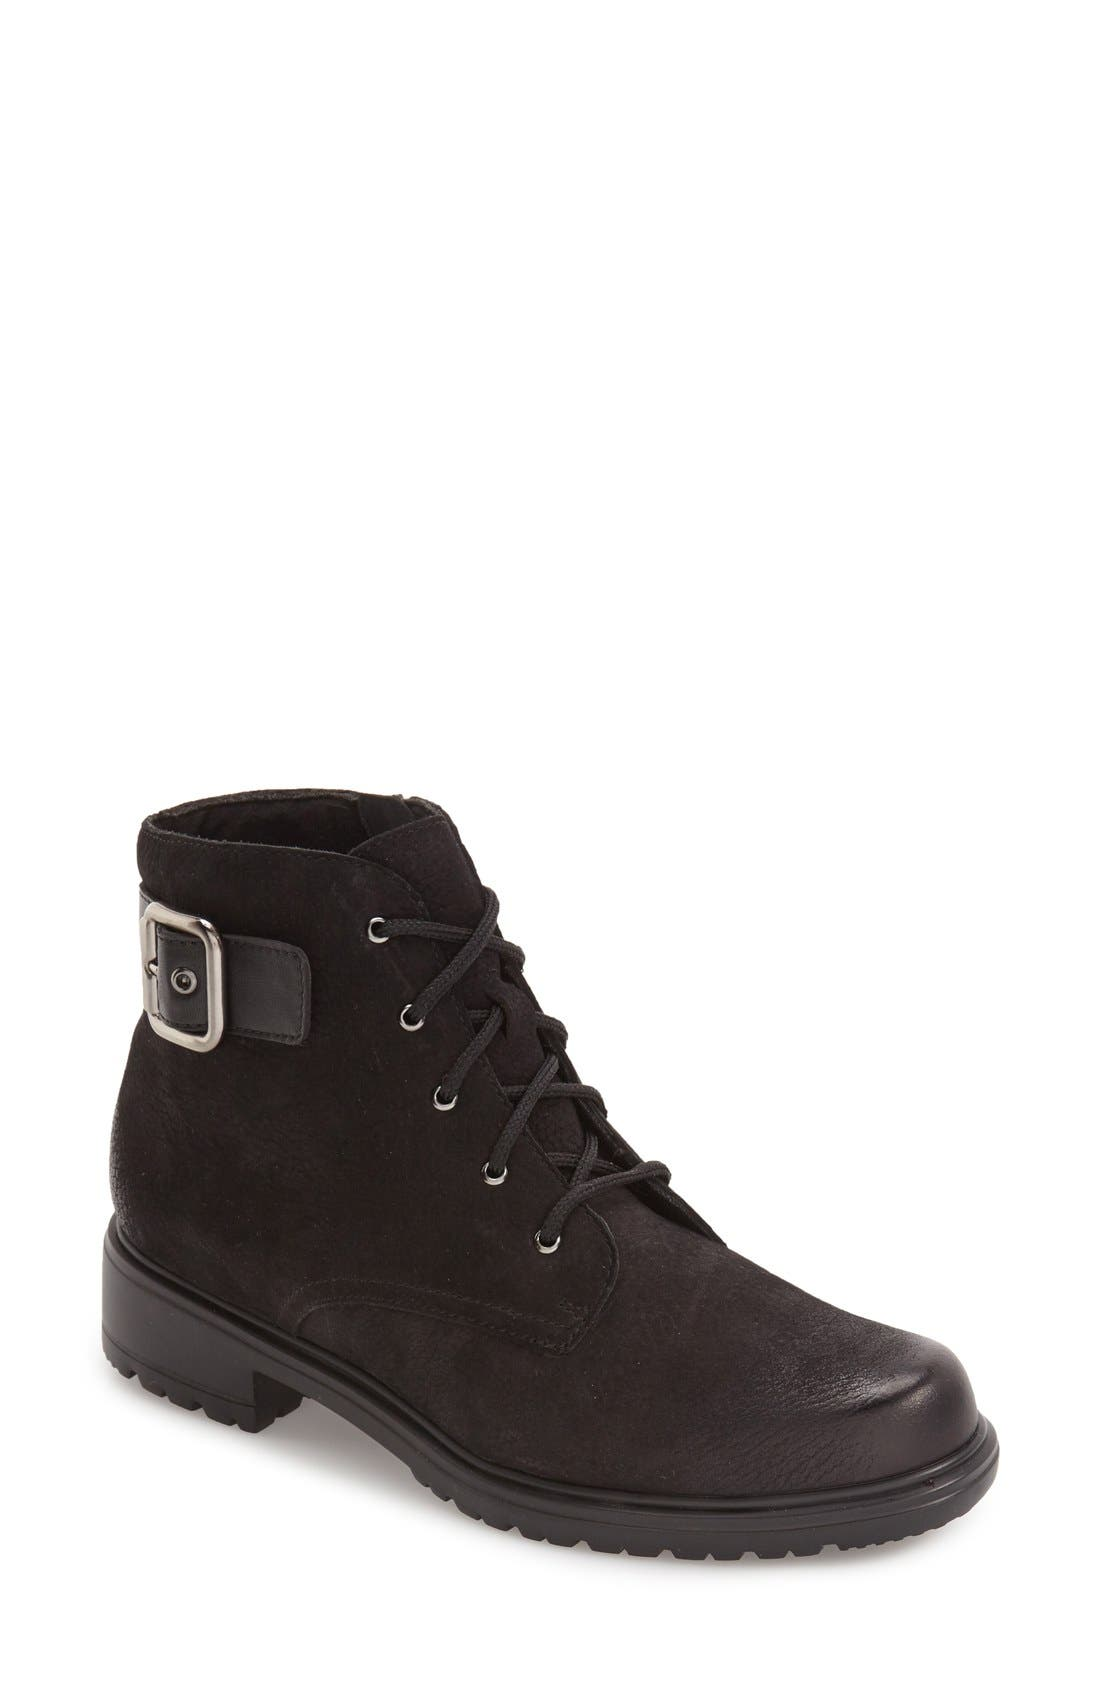 Bradley Water Resistant Boot,                         Main,                         color, BLACK TUMBLED NUBUCK LEATHER